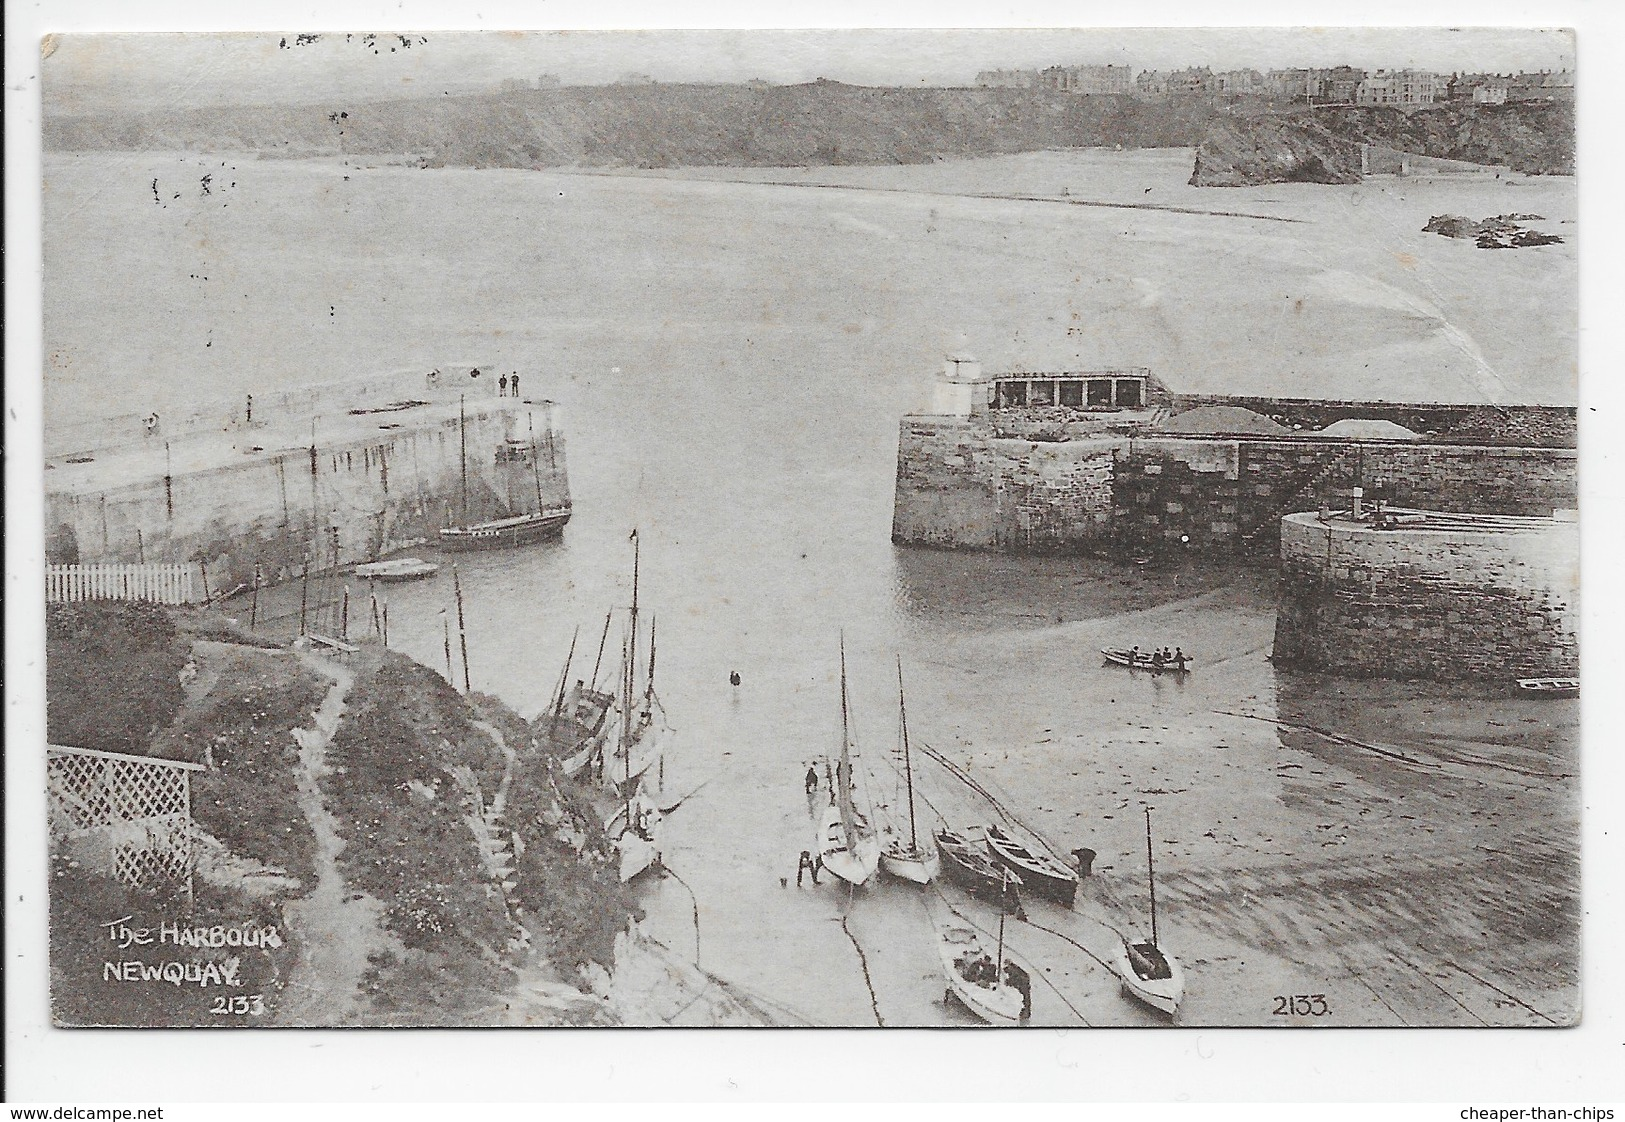 The Harbour, Newquay - Newquay